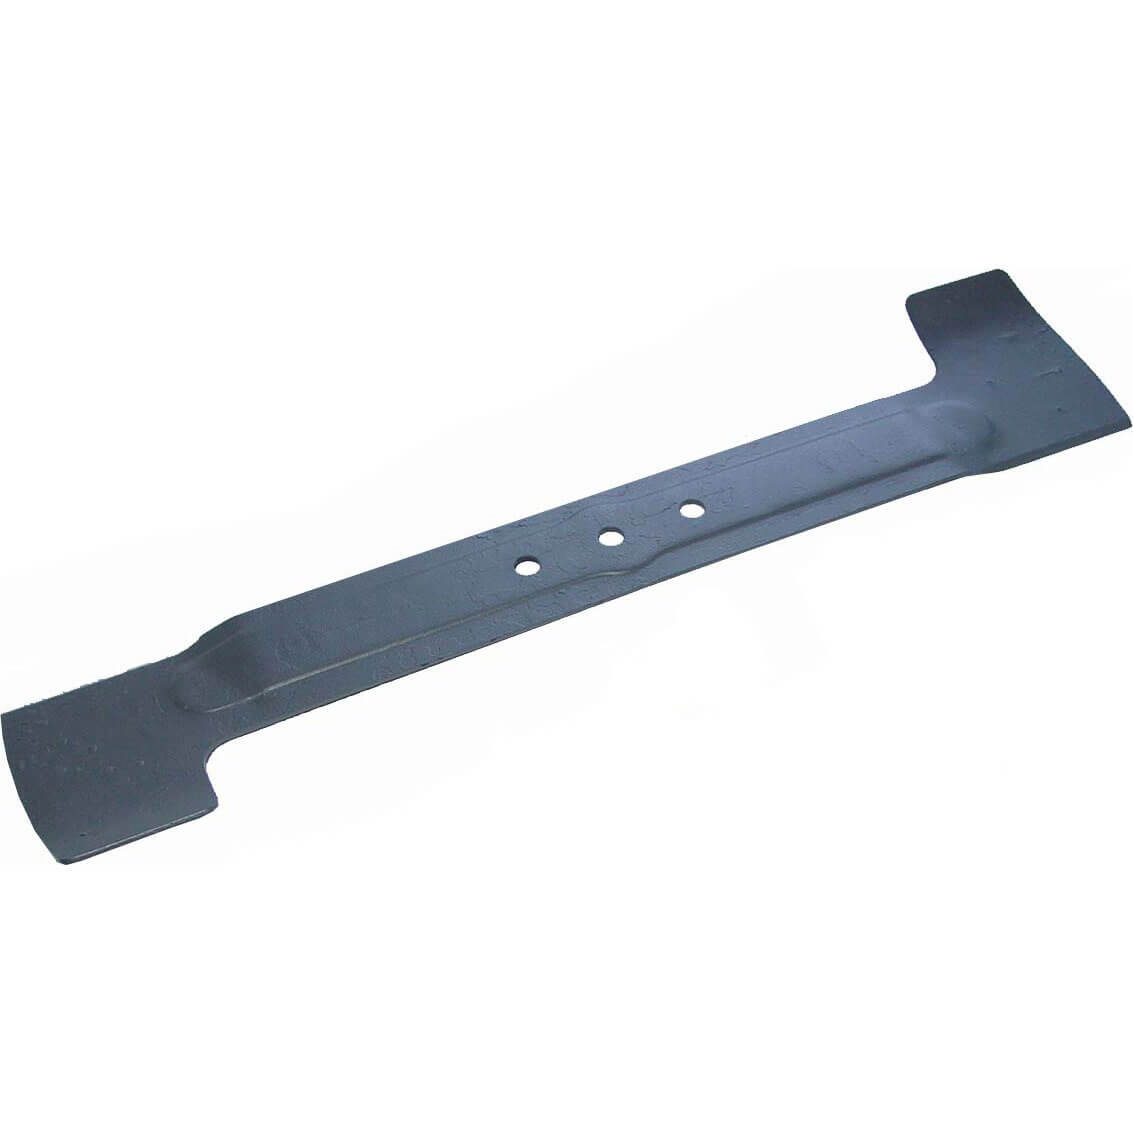 Bosch Replacement Blade for Electric Rotak 34 & 34 R Lawnmowers